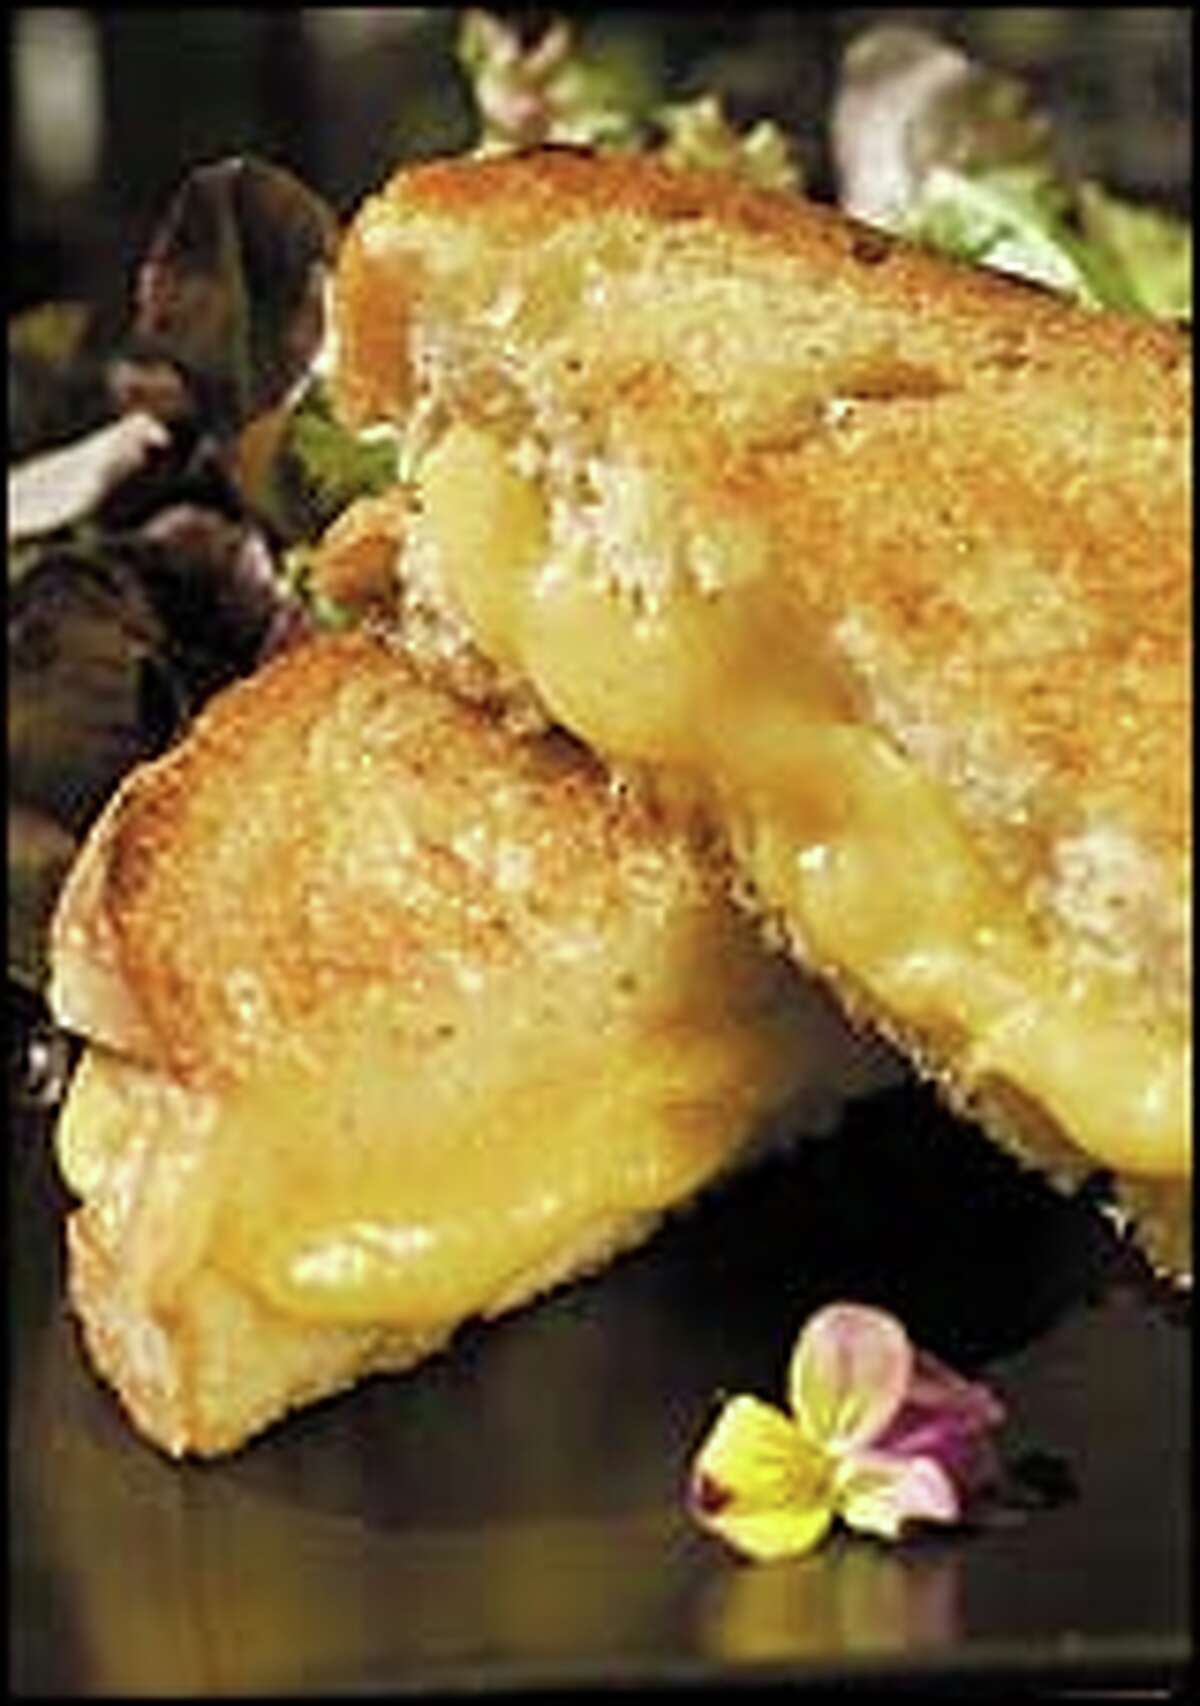 One of the premium American comfort foods is the grilled cheese sandwich, often served with tomato soup.